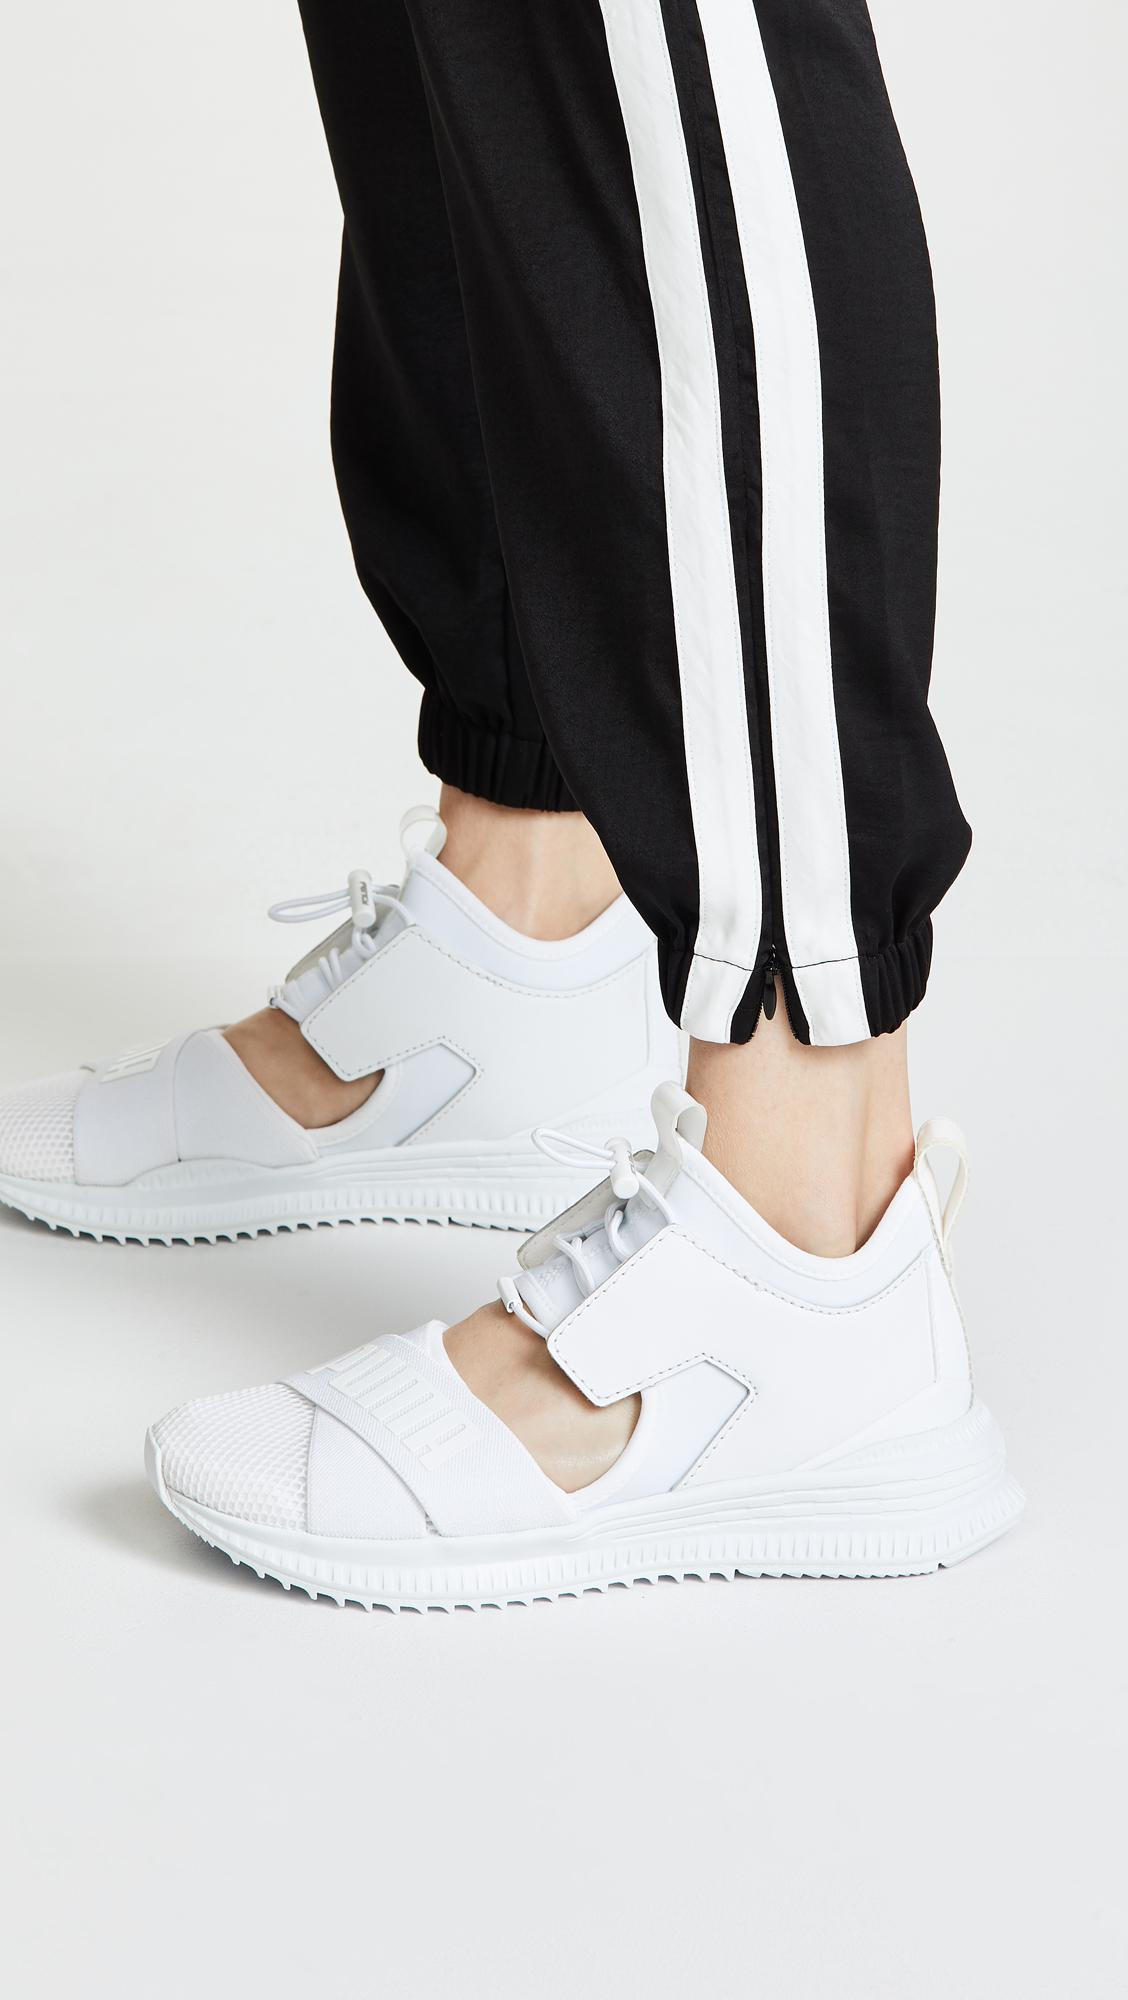 detailed look 5592d db8a4 PUMA X Fenty Avid Sneakers in White - Lyst